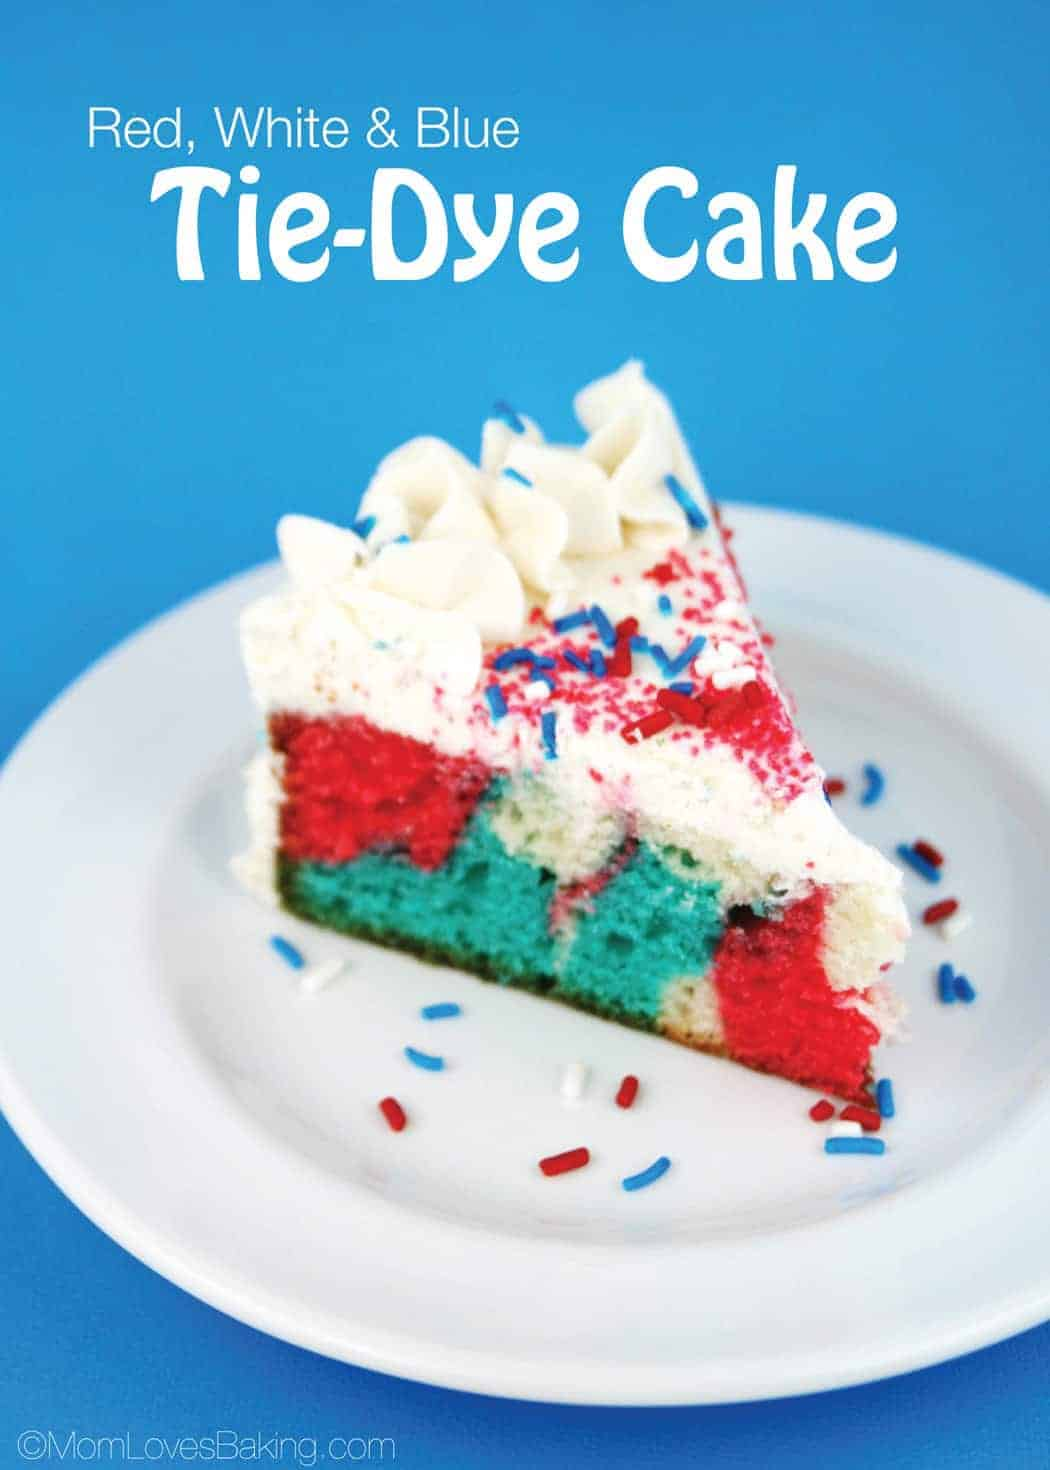 TieDyeCakeWithText